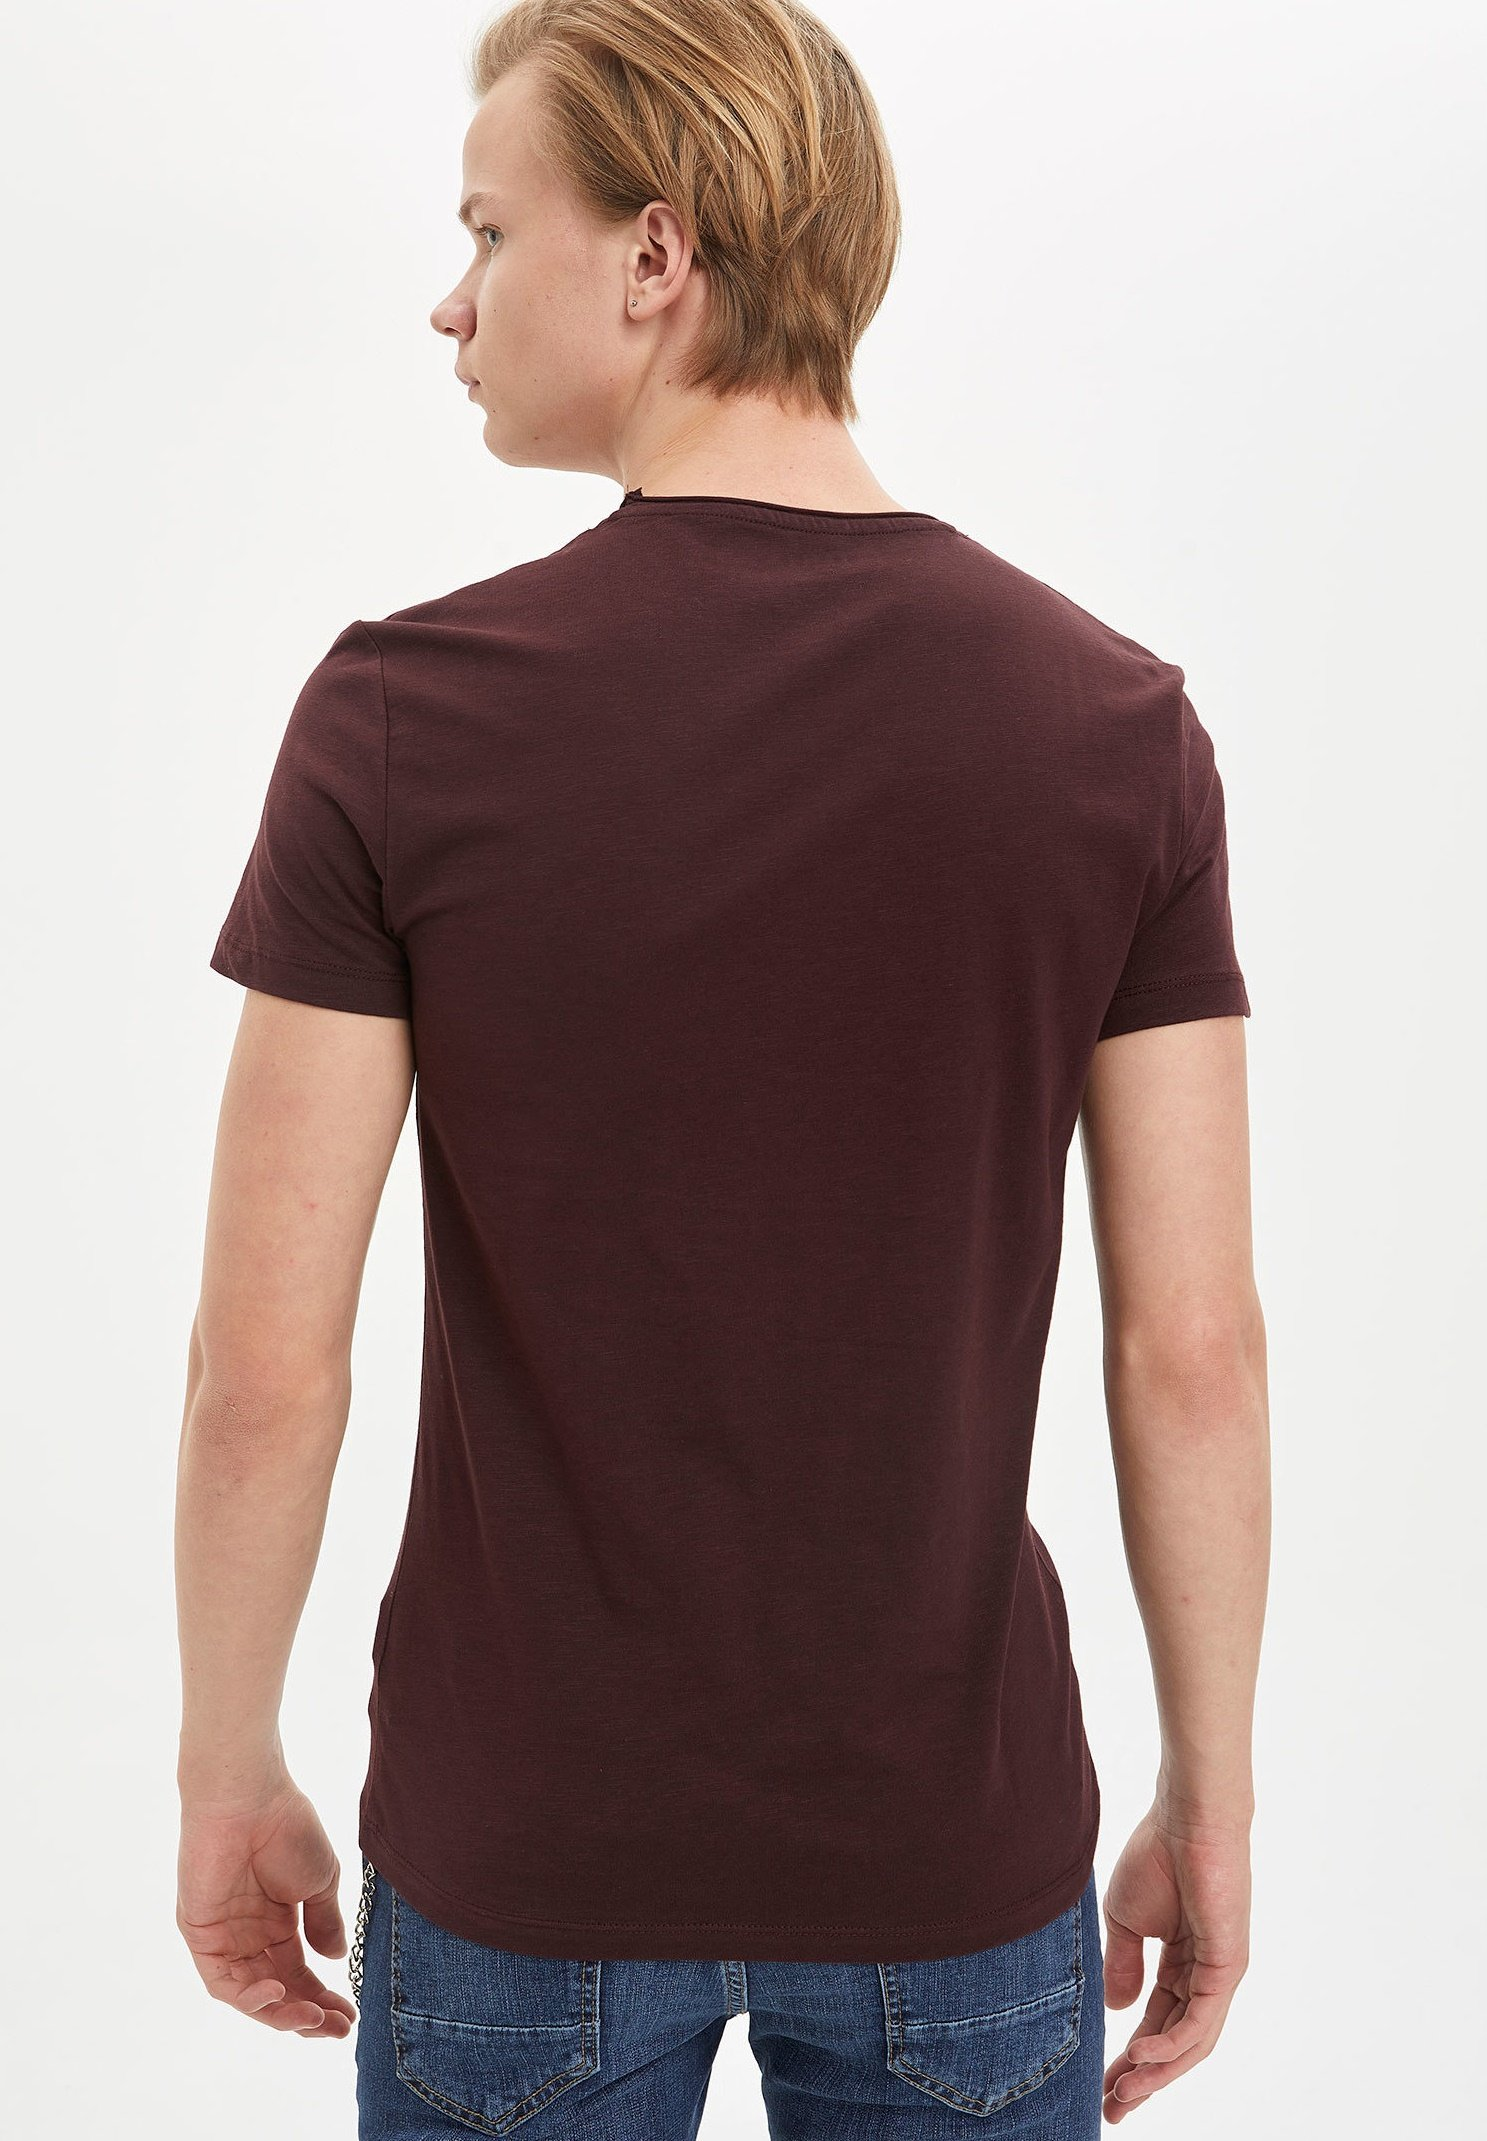 DeFacto Basic T-shirt - bordeaux qoEel